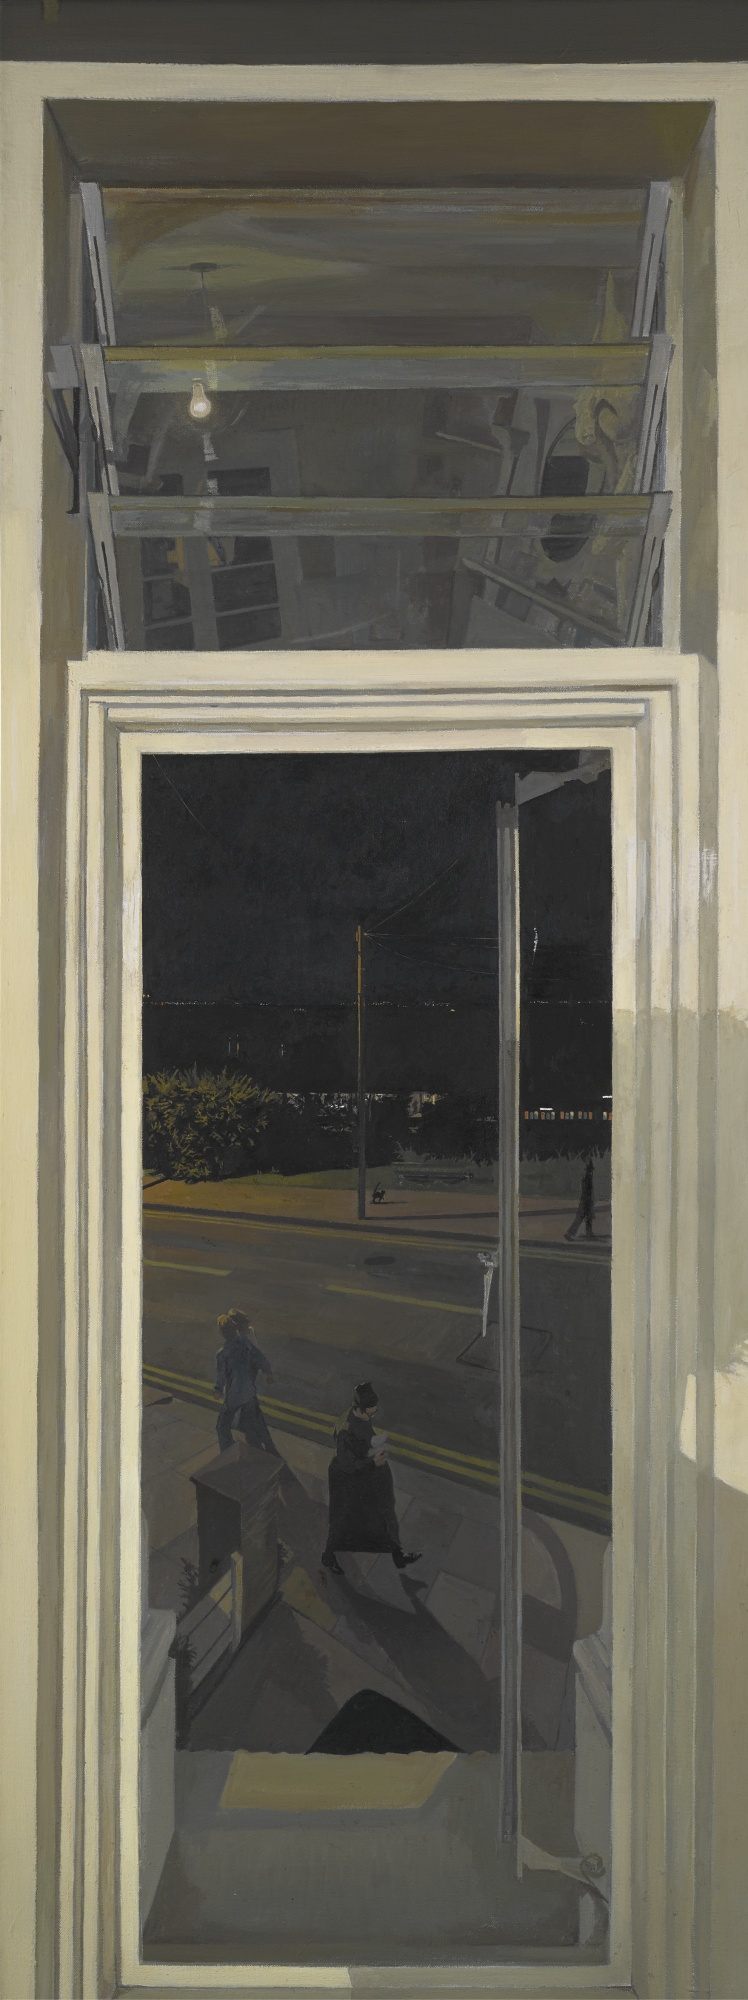 John Wonnacott-Estuary Window: Summer Night - The Priest-1979